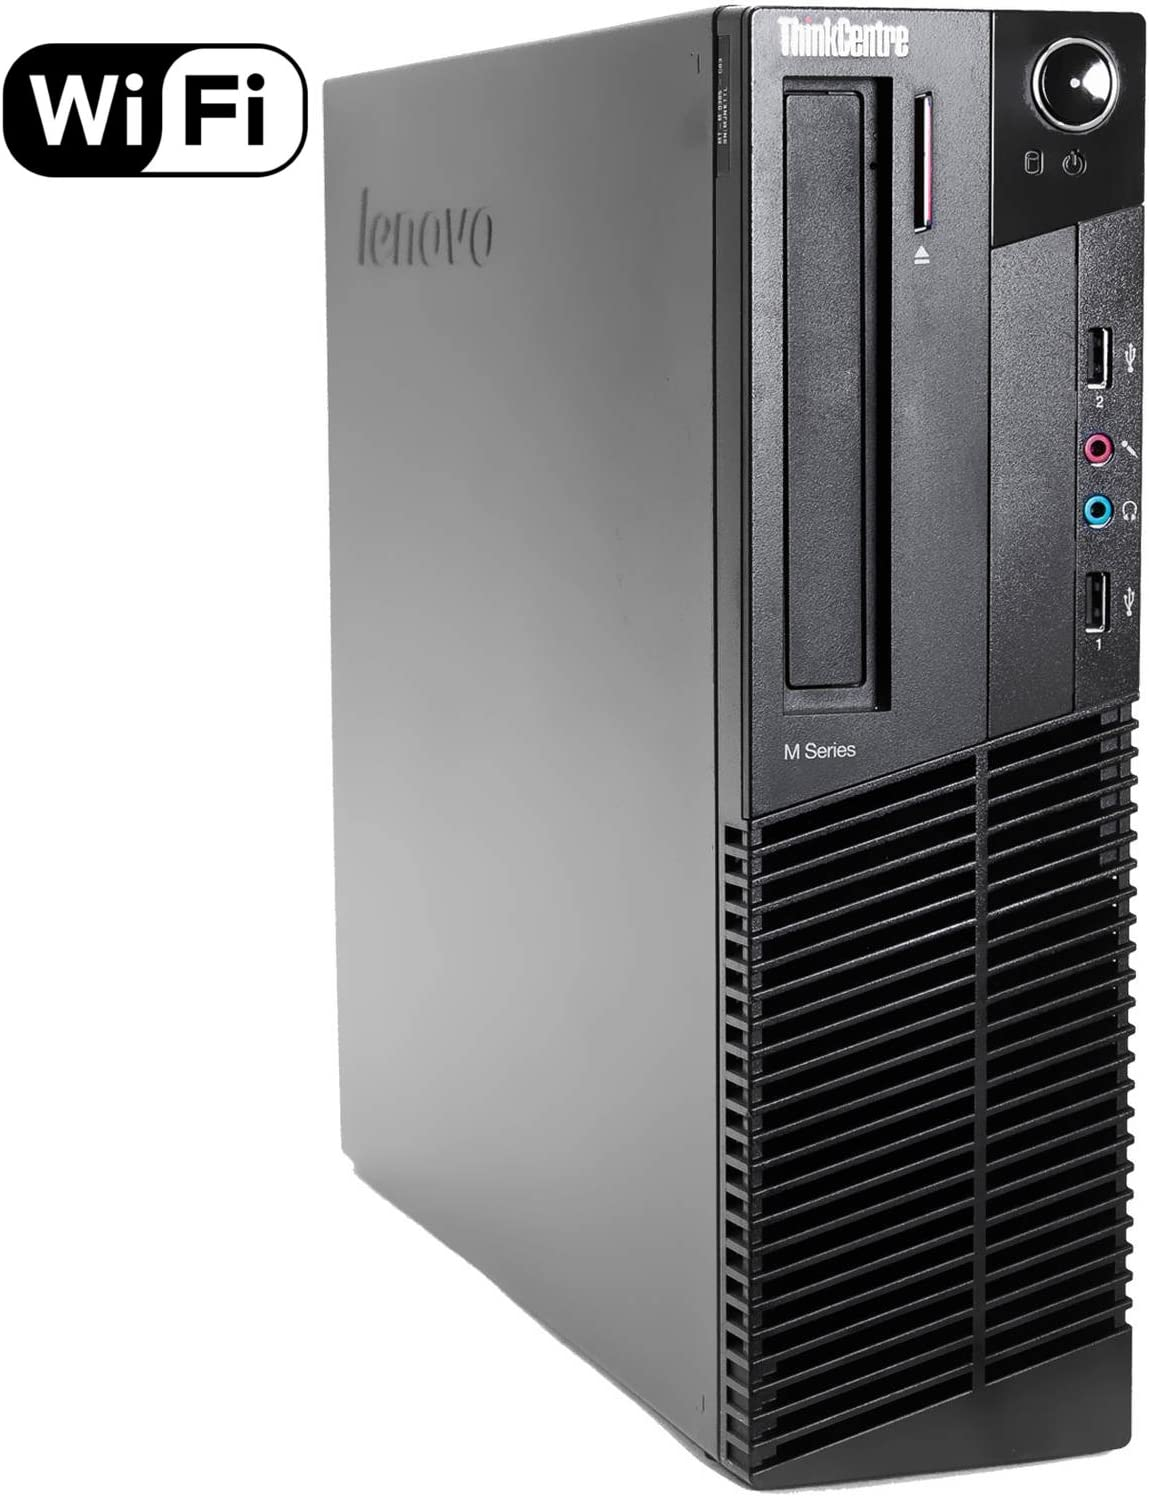 Lenovo ThinkCentre M82 SFF Business Desktop Computer, Intel Quad-Core i5-3470 Processor 3.2GHz (up to 3.6GHz), 12GB RAM, 2TB HDD, DVD ROM, Windows 10 Professional (Renewed)